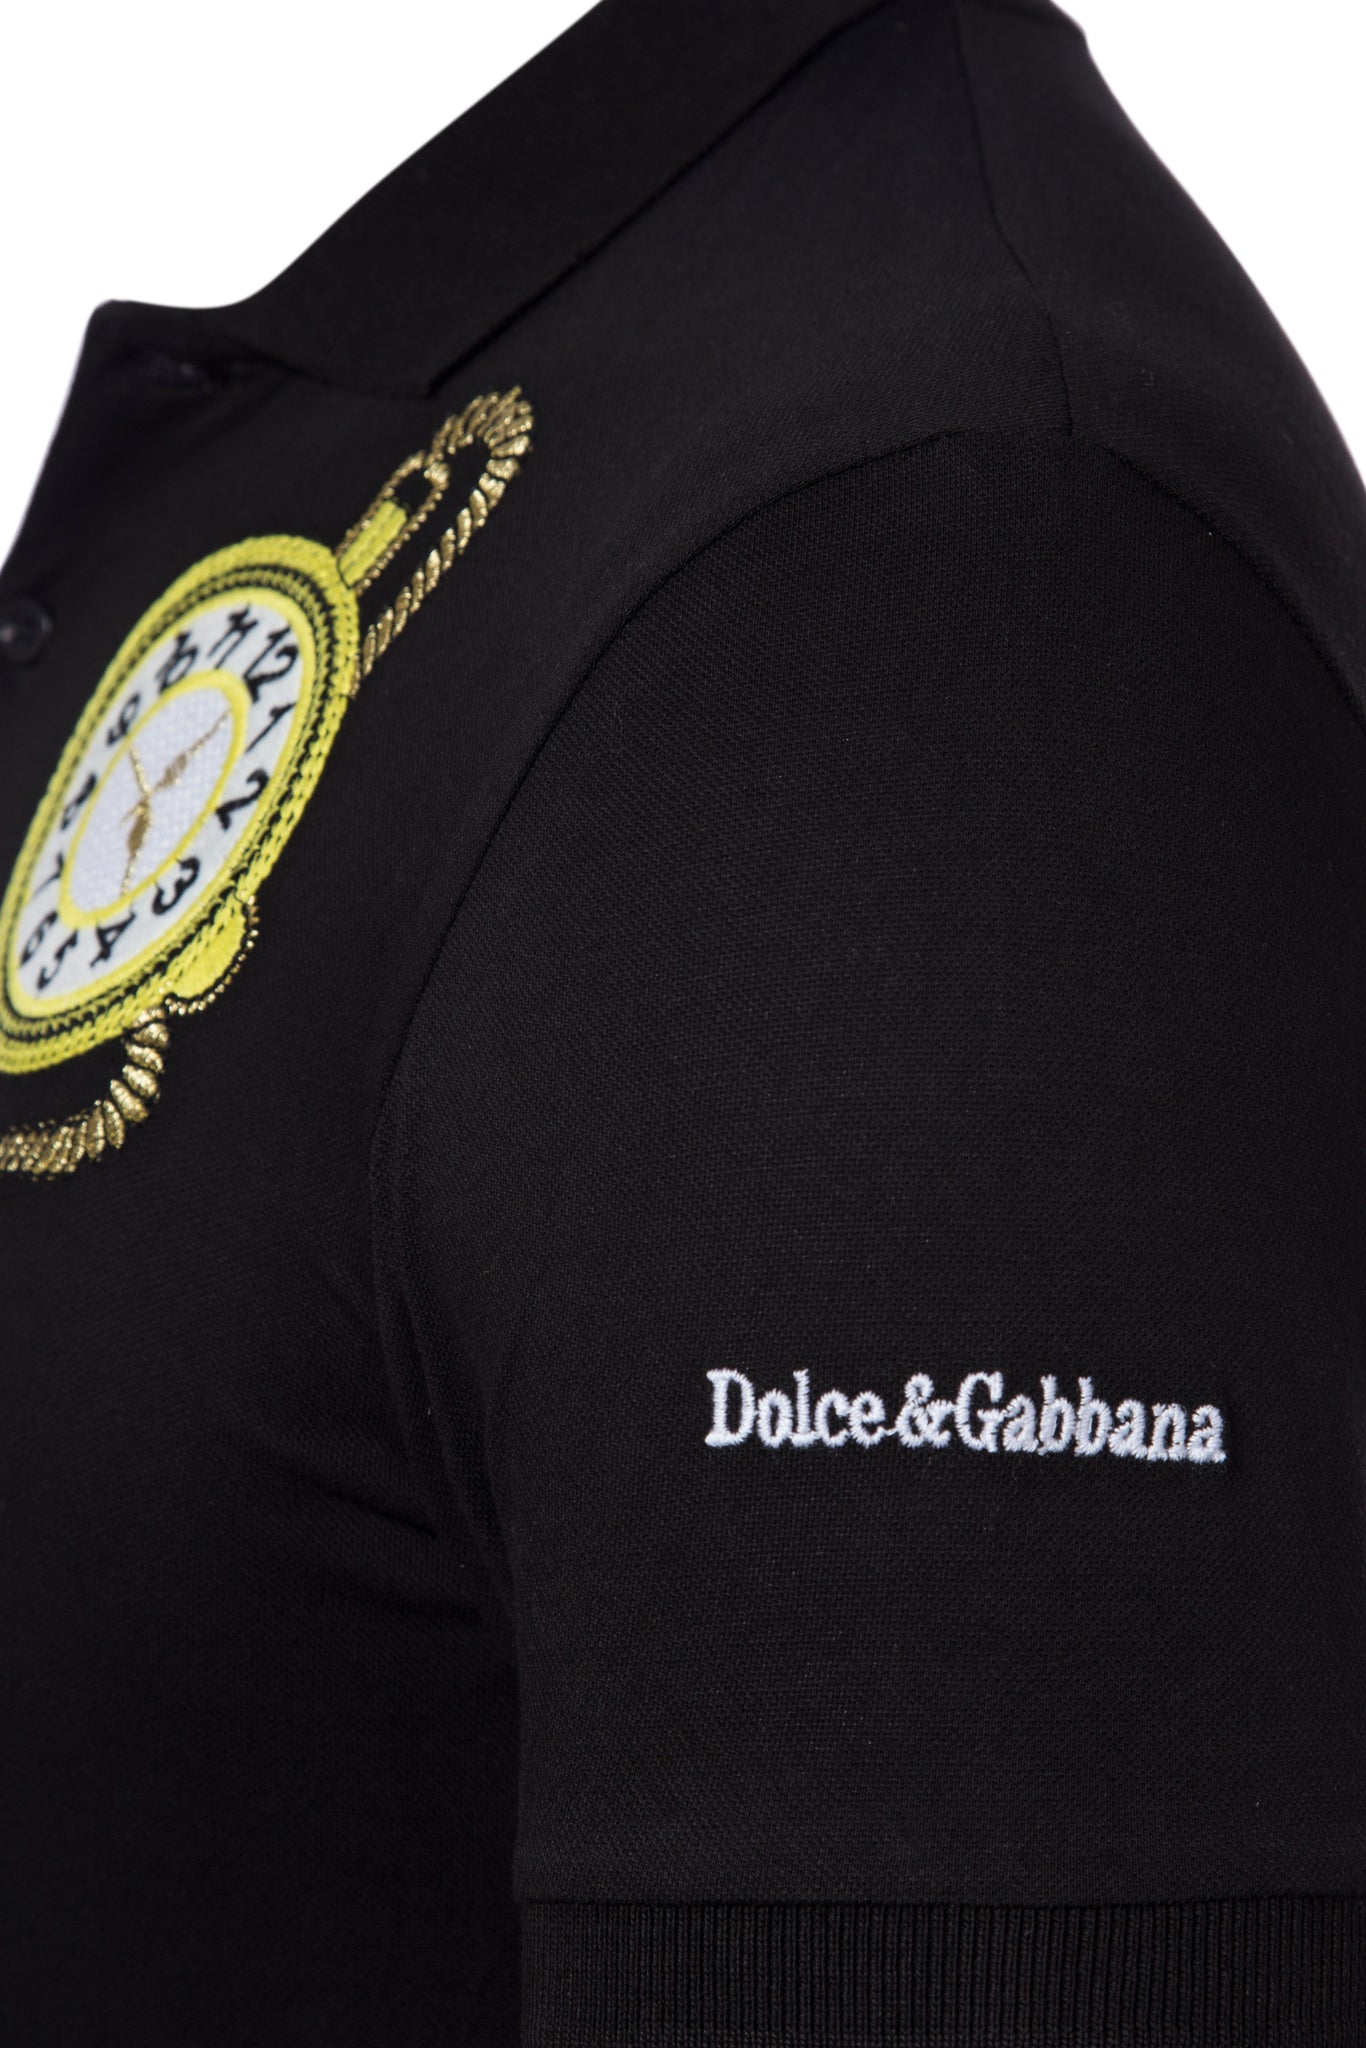 Dolce & Gabbana Black Men Polo Shirt Material Cotton